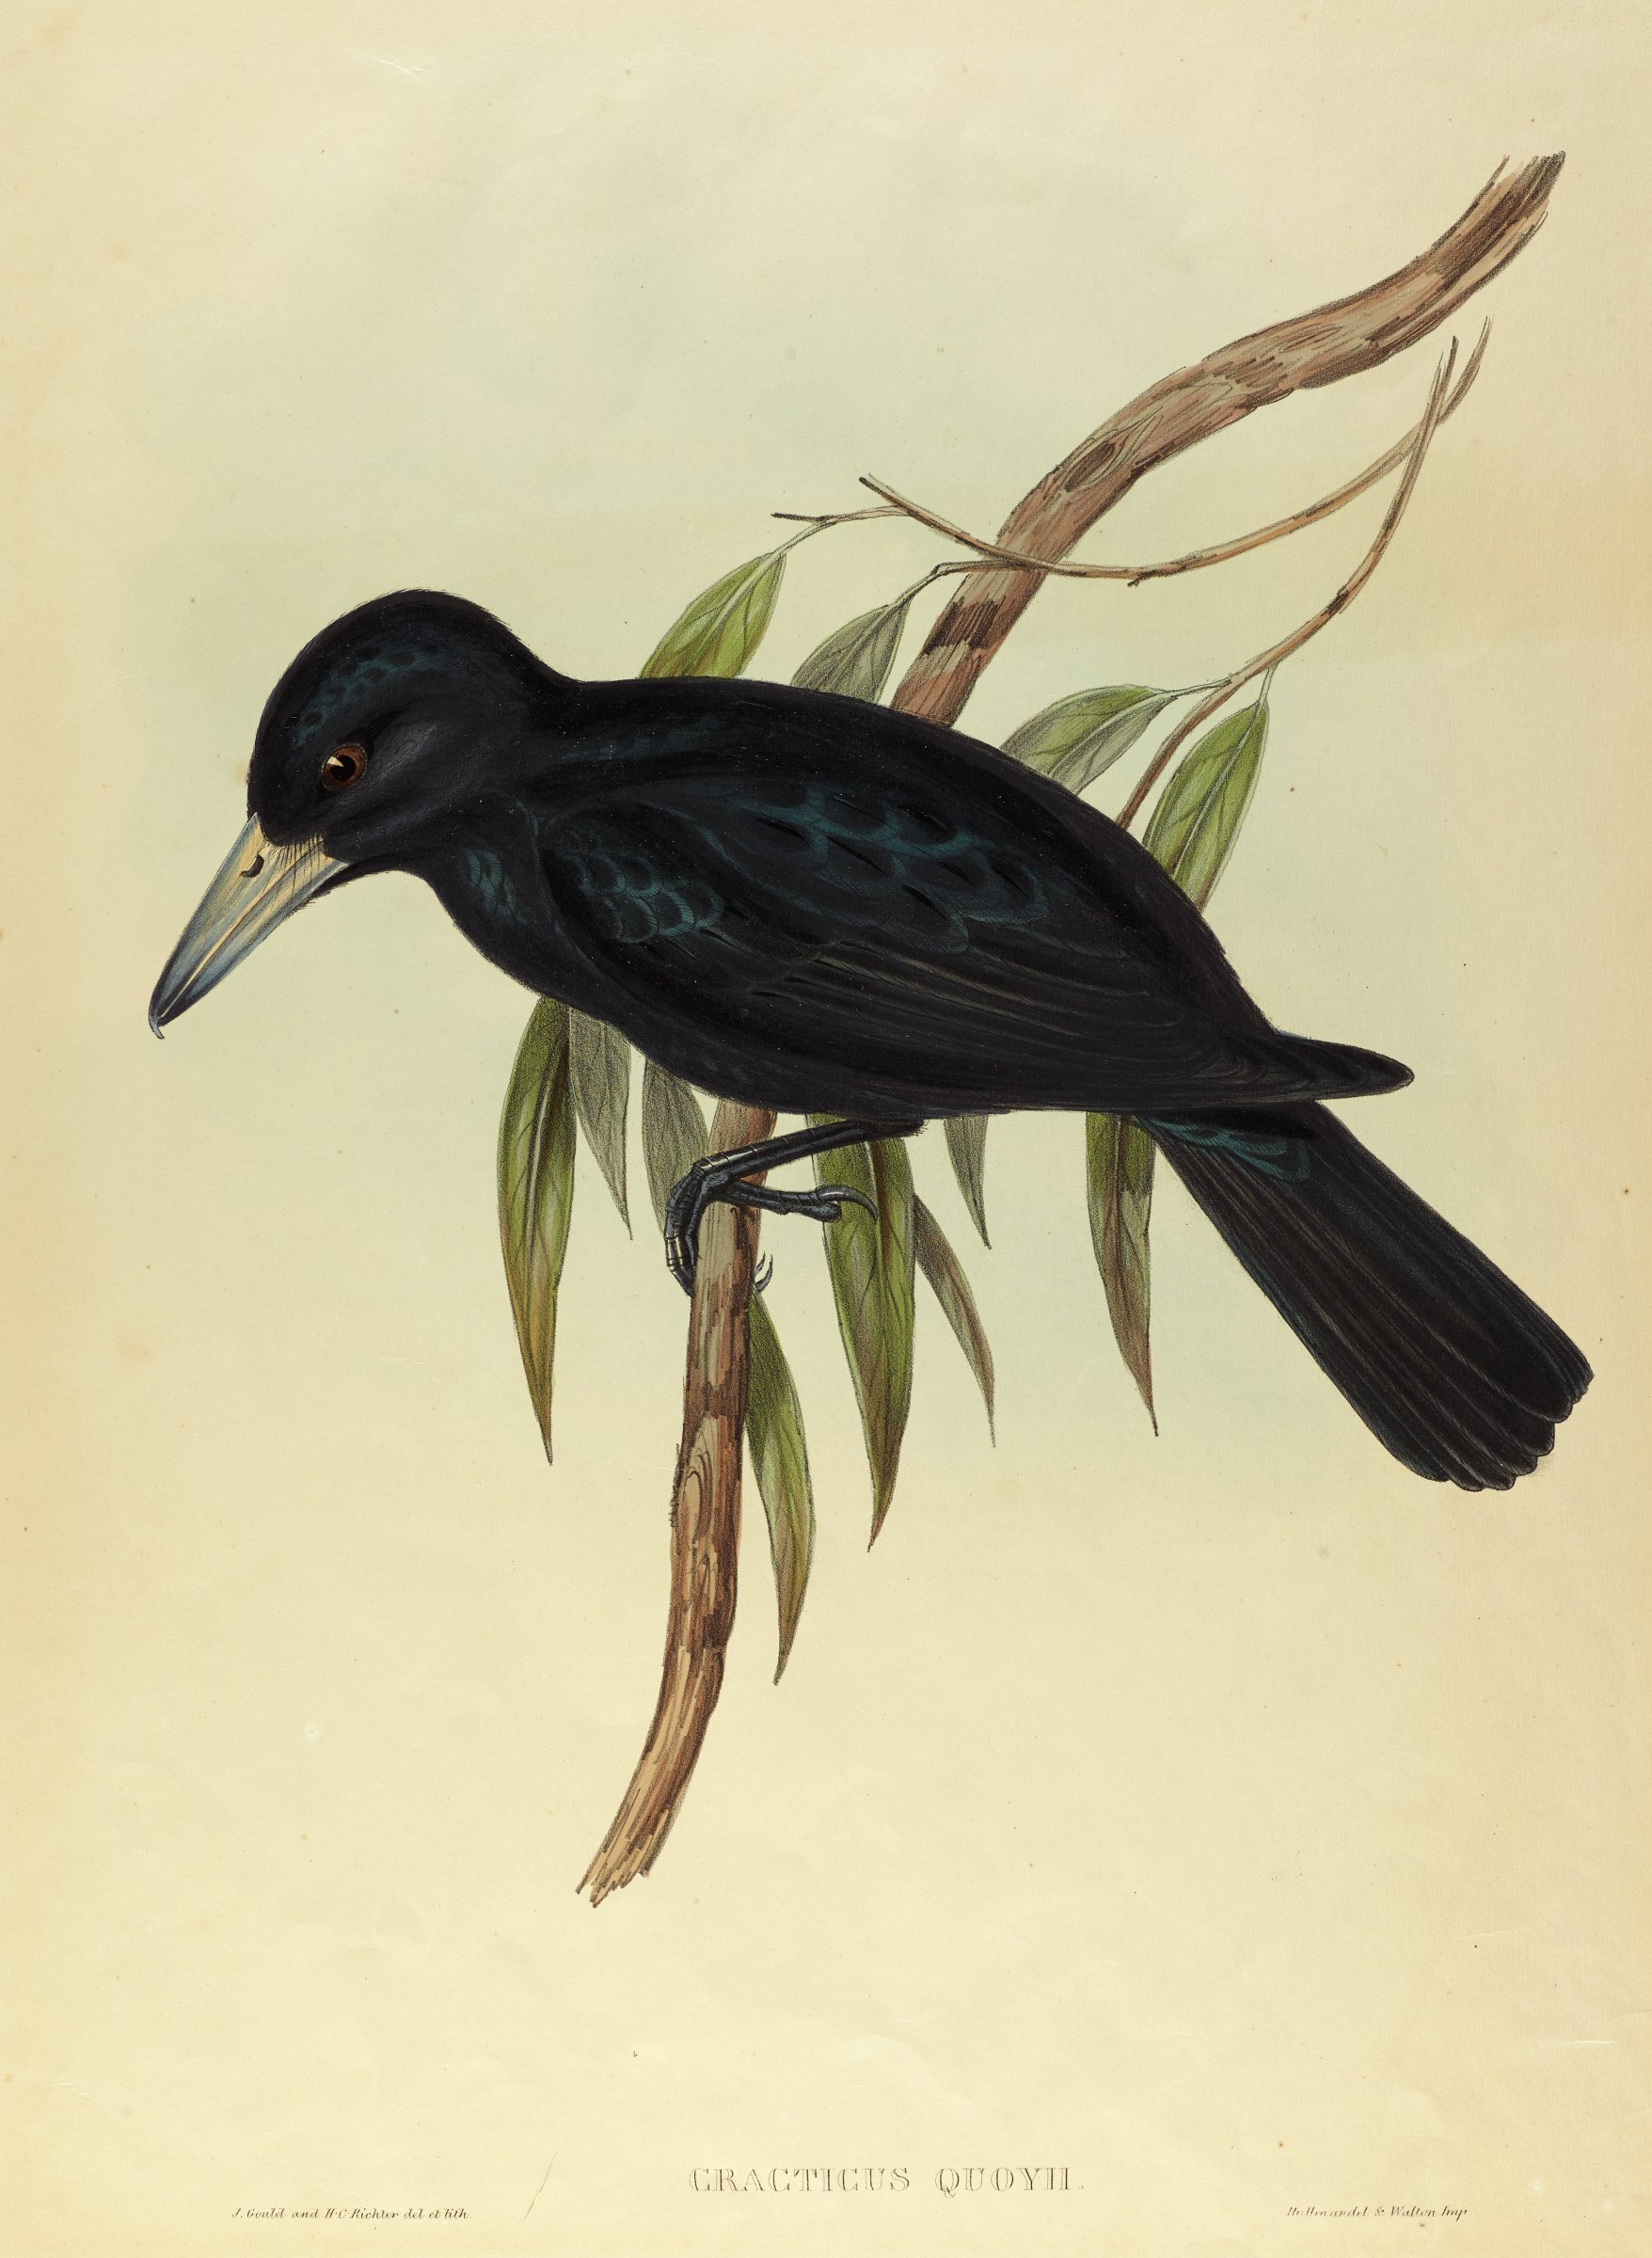 A large black bird with a narrow hooked beak sits on a branch with thin leaves.